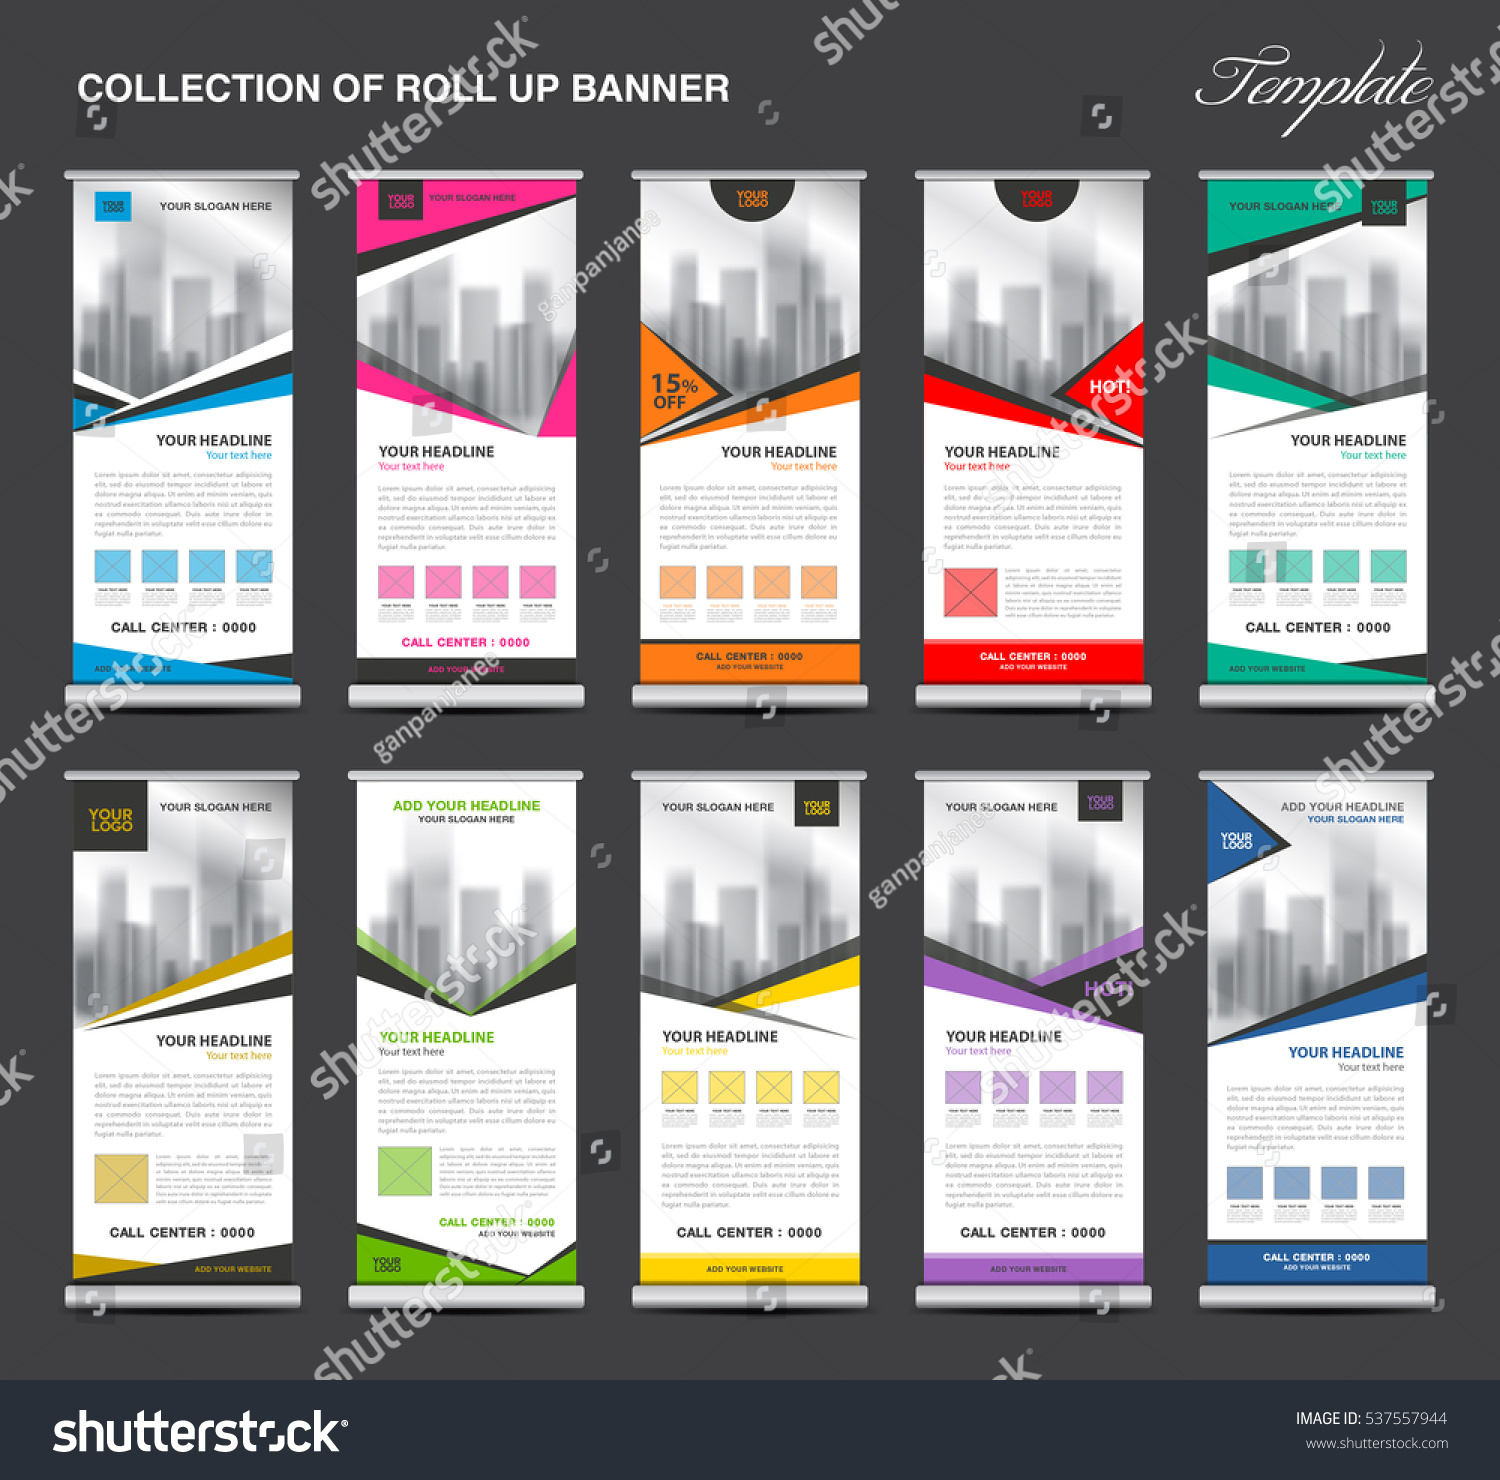 collection roll banner design stand template のベクター画像素材